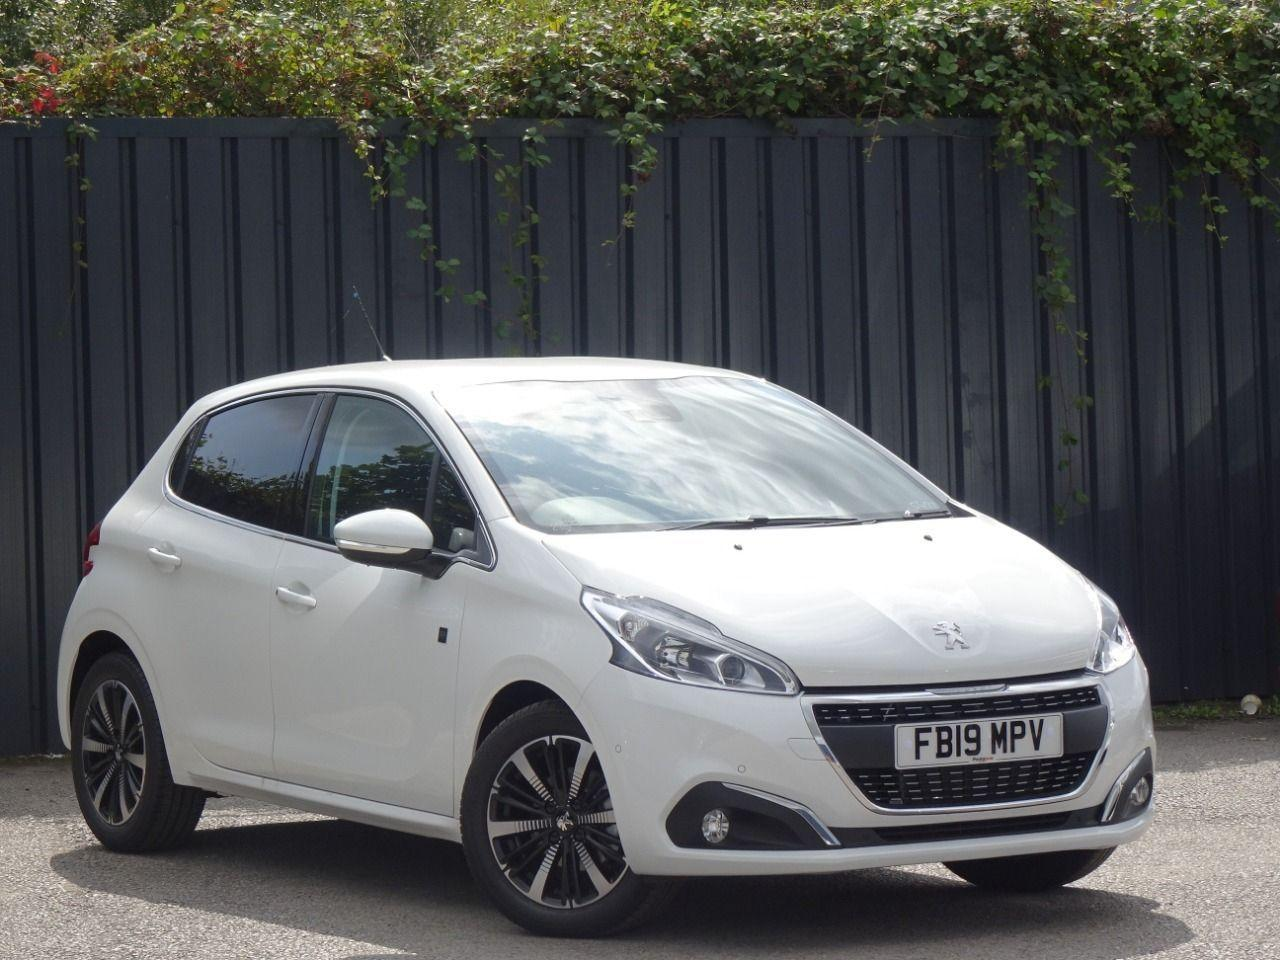 Peugeot 208 1.2 PURETECH 82PS TECH EDITION 5DR START STOP